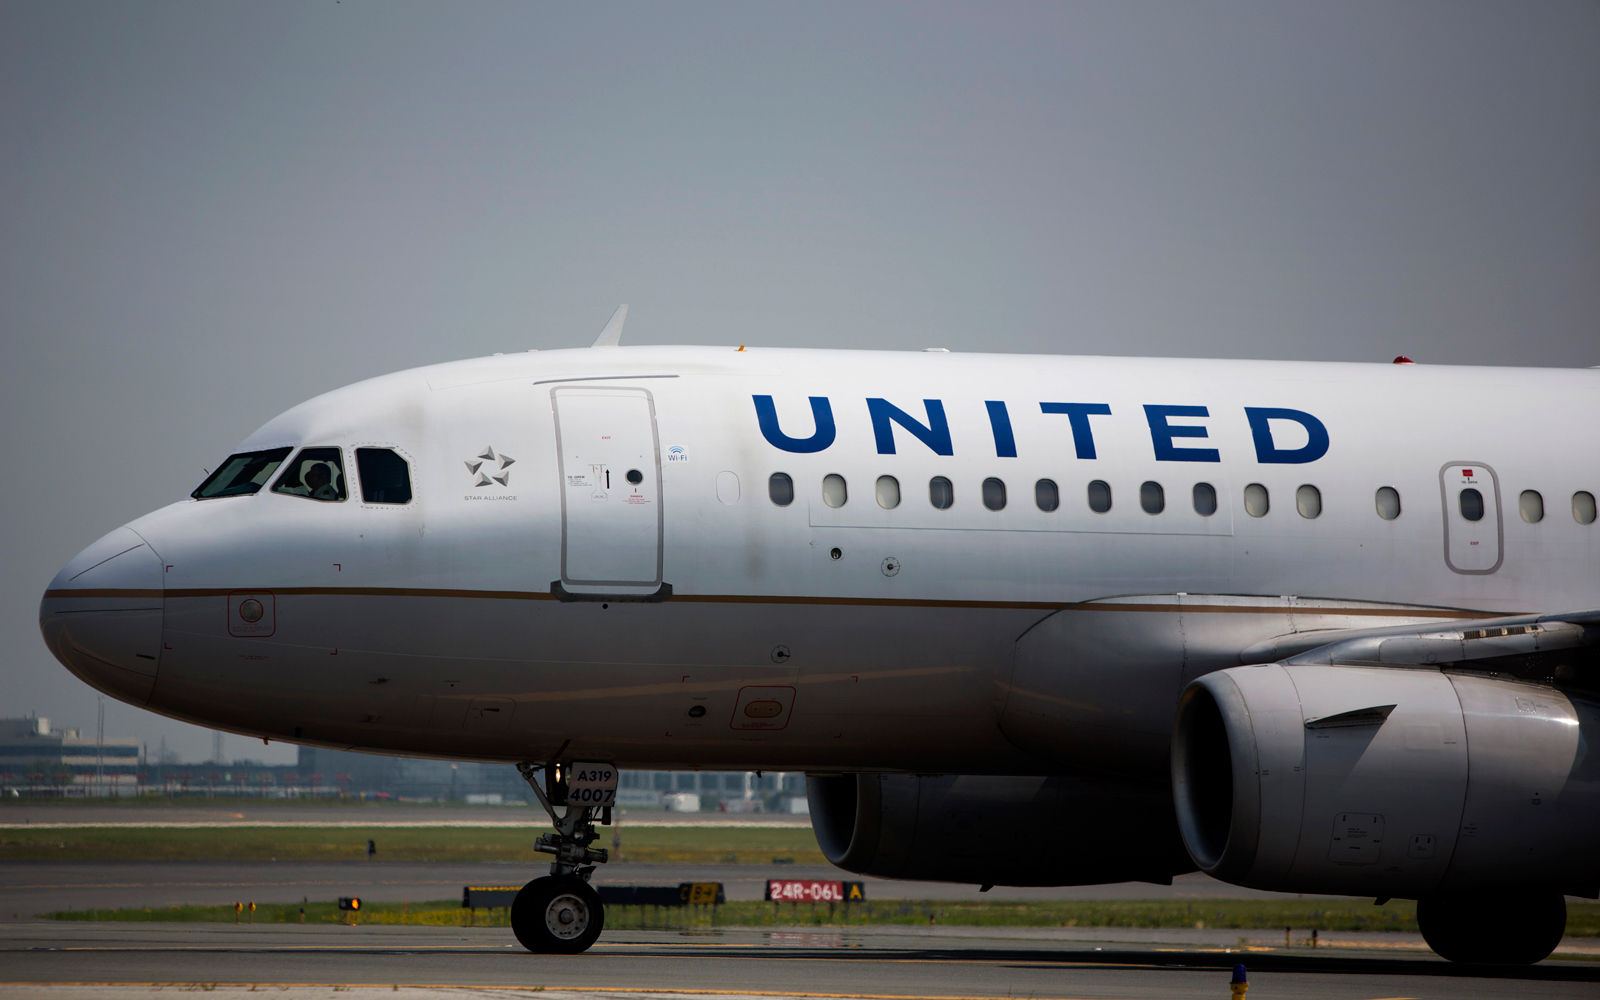 Scorpion reported on United flight — again